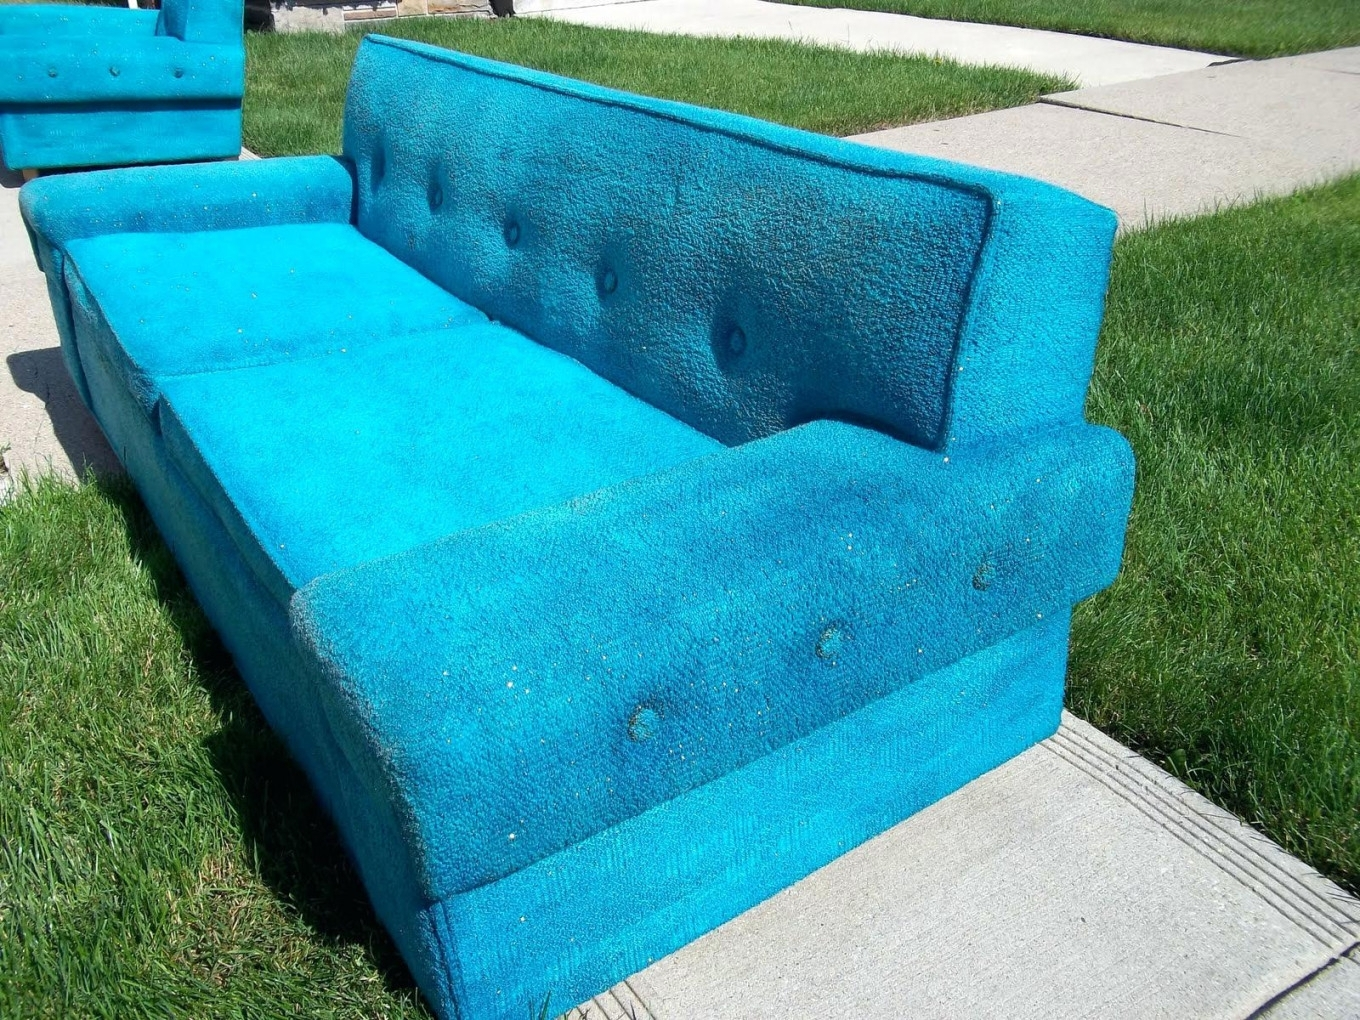 Most Up To Date Articles With Overstock Outdoor Chaise Lounge Cushions Tag Inside For Overstock Chaise Lounges (View 12 of 15)